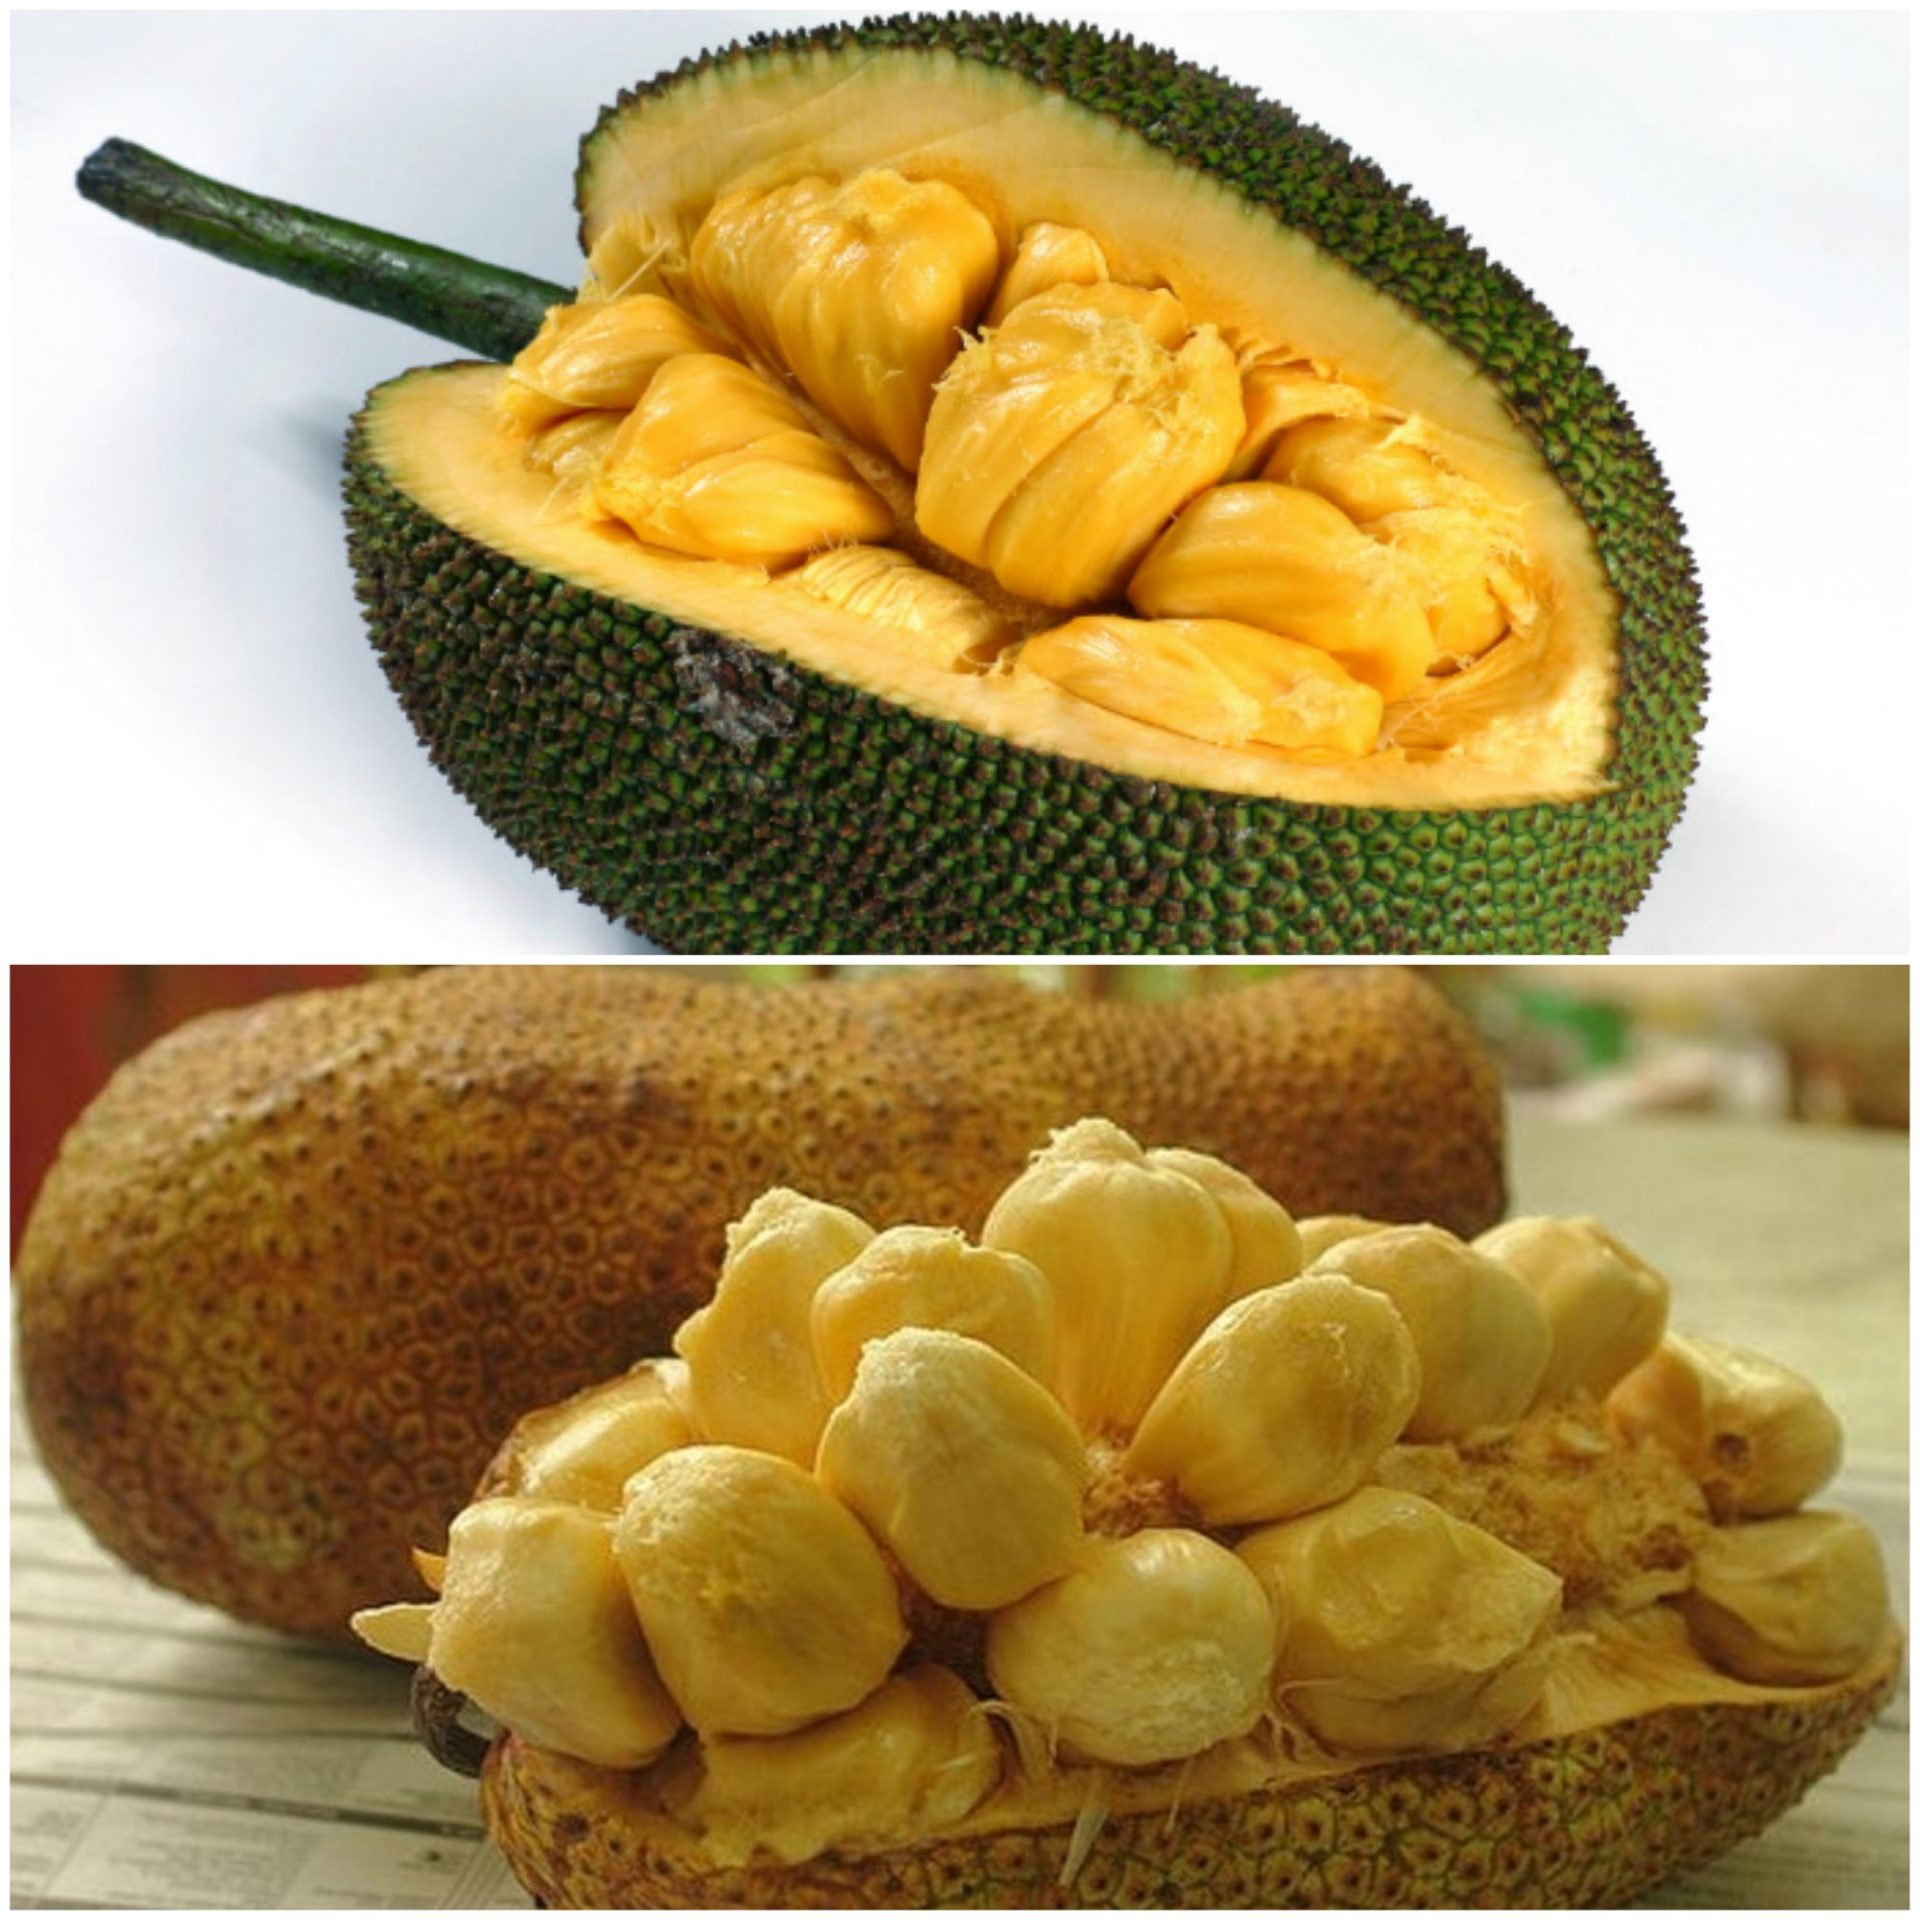 Image result for nangka vs cempedak